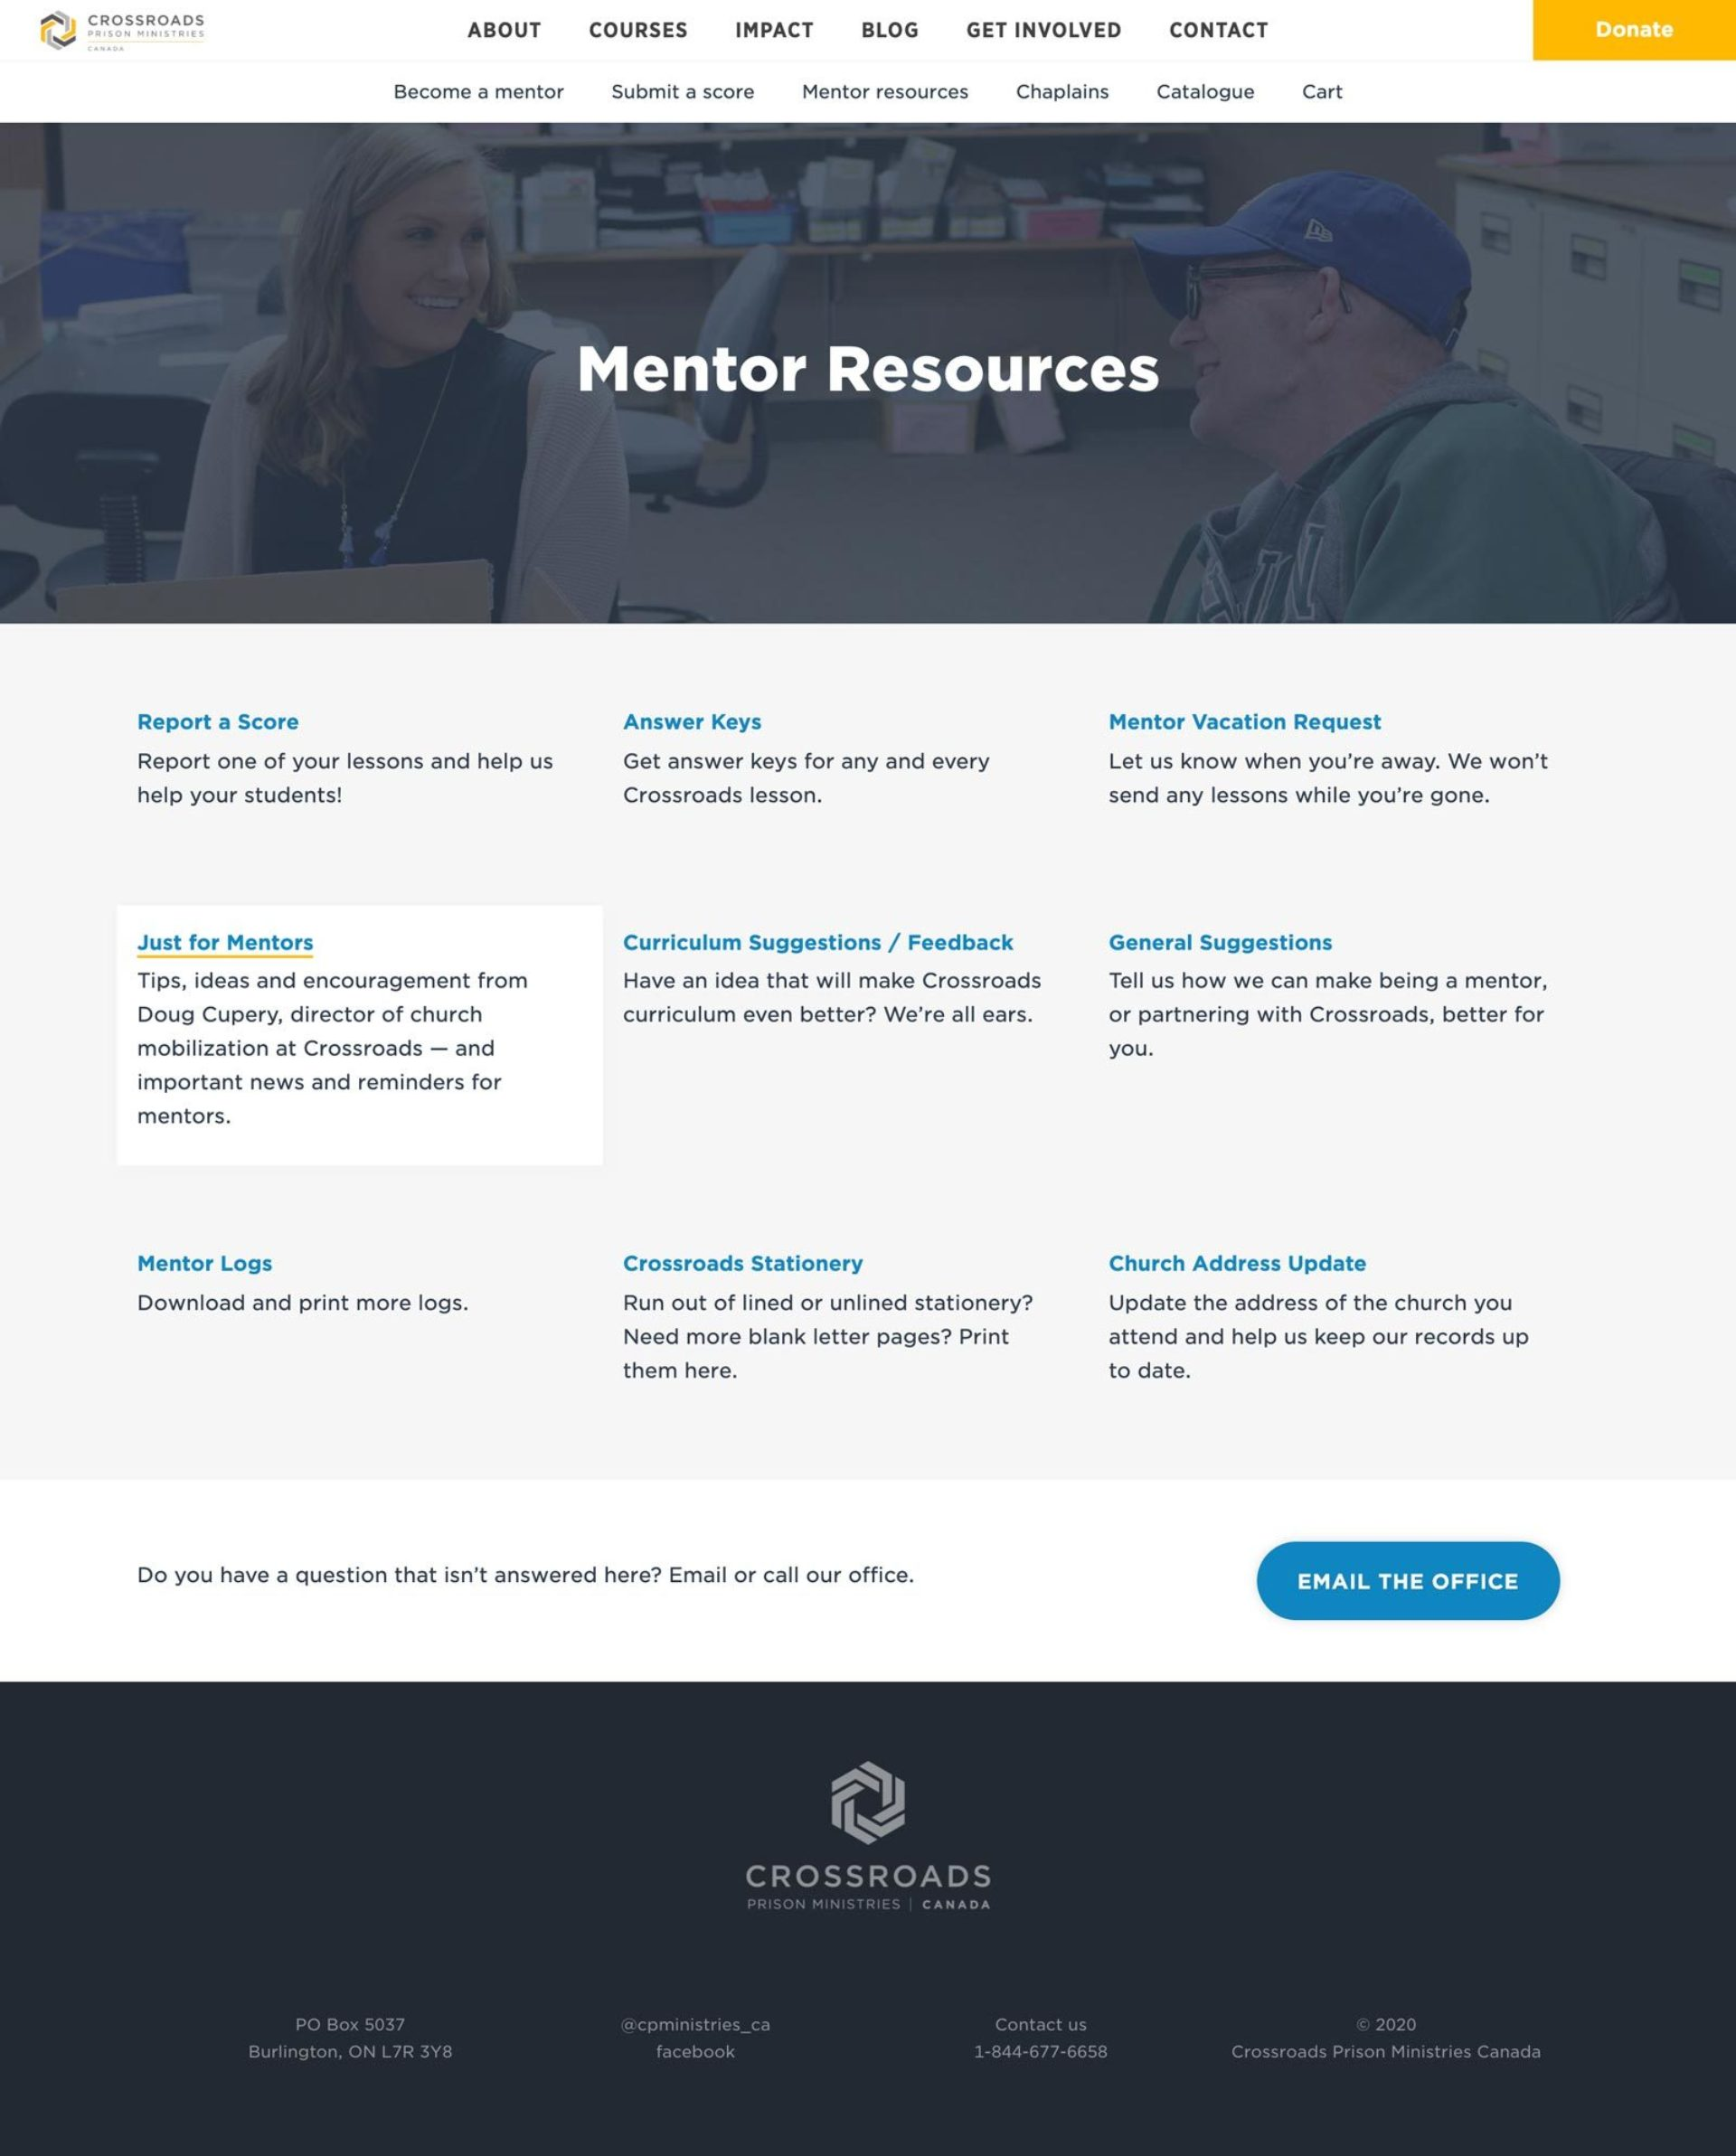 Full size screenshot of the Mentor Resources page on the Crossroads website